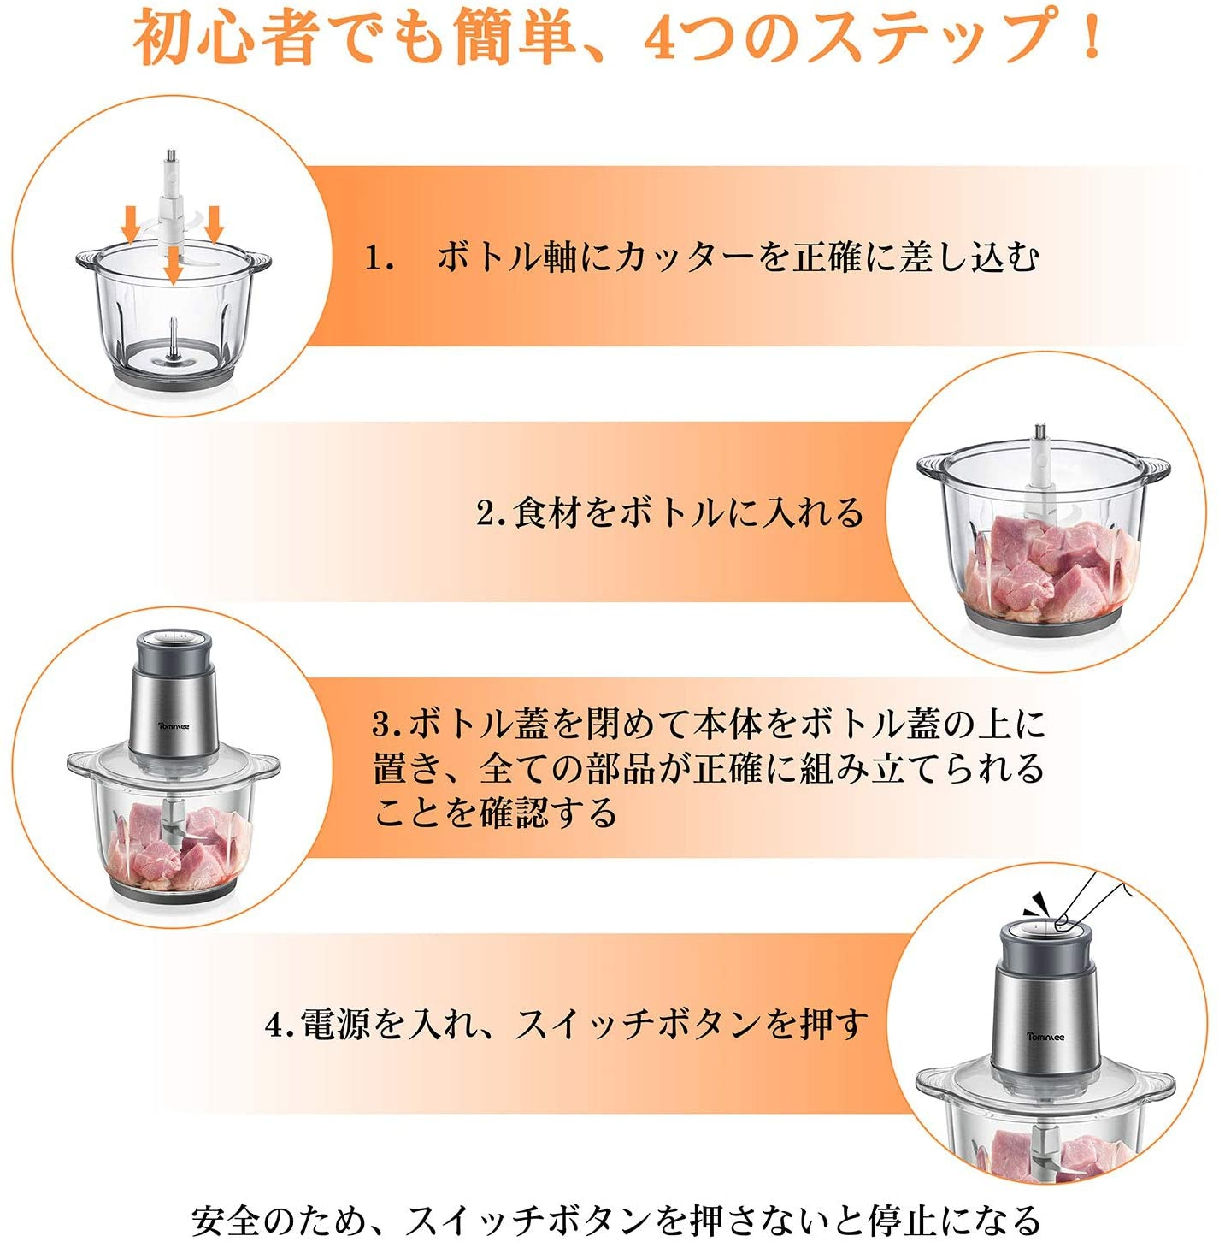 Tominlee フードプロセッサーの商品画像6